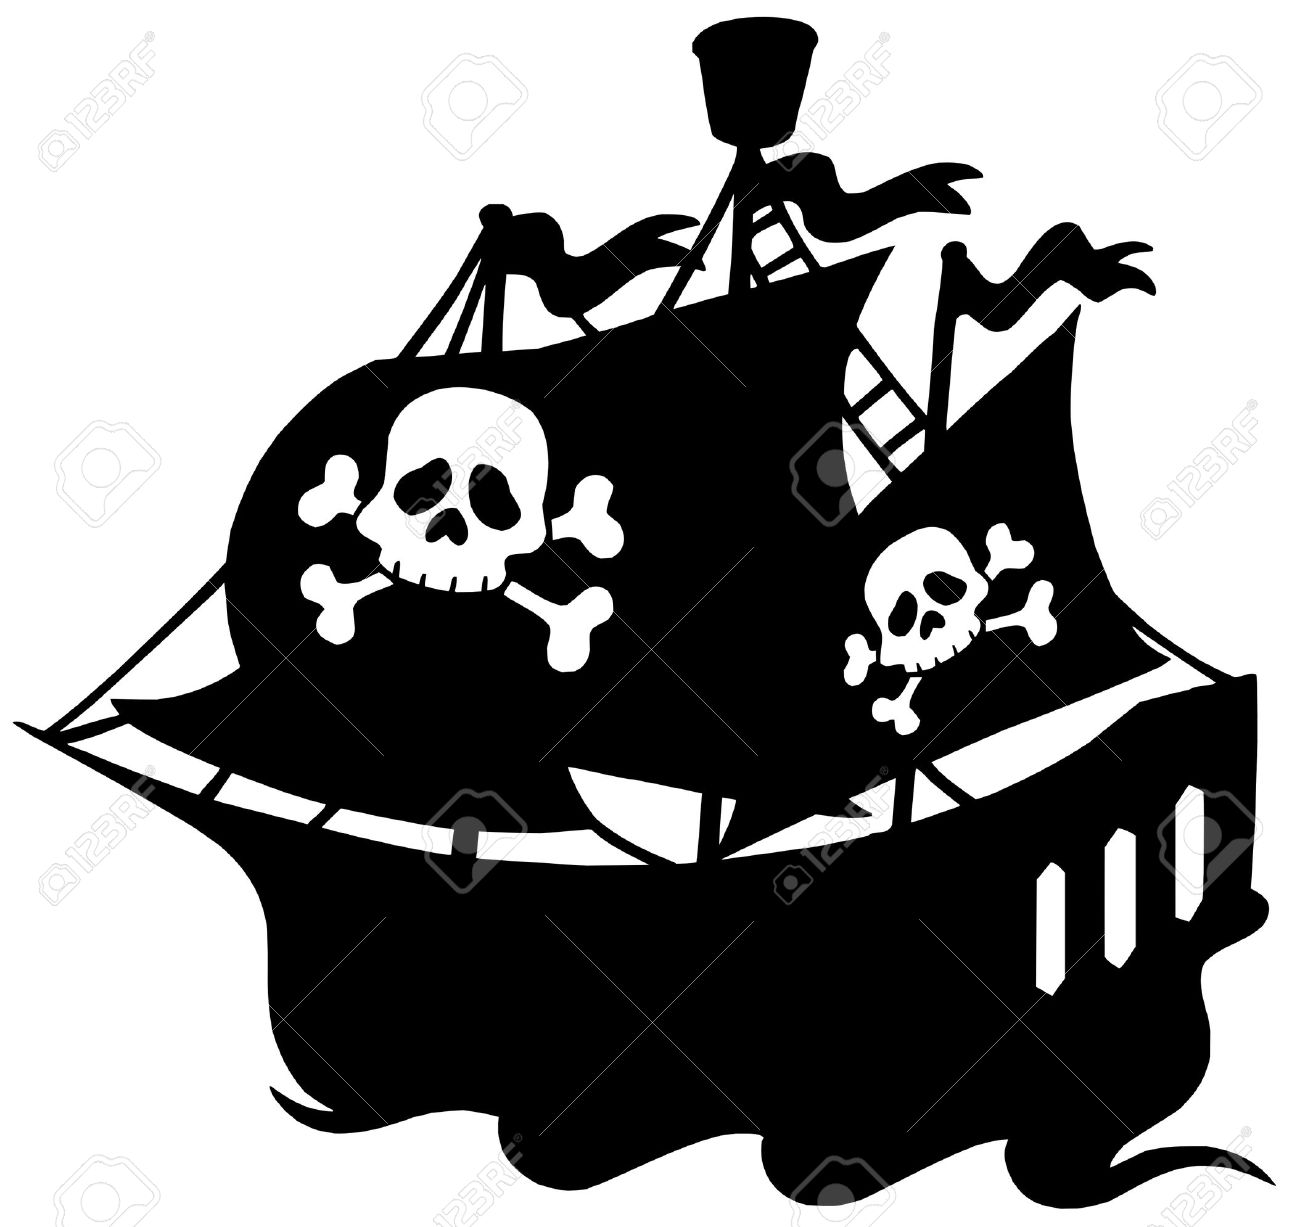 pirate ship silhouette clipart #16